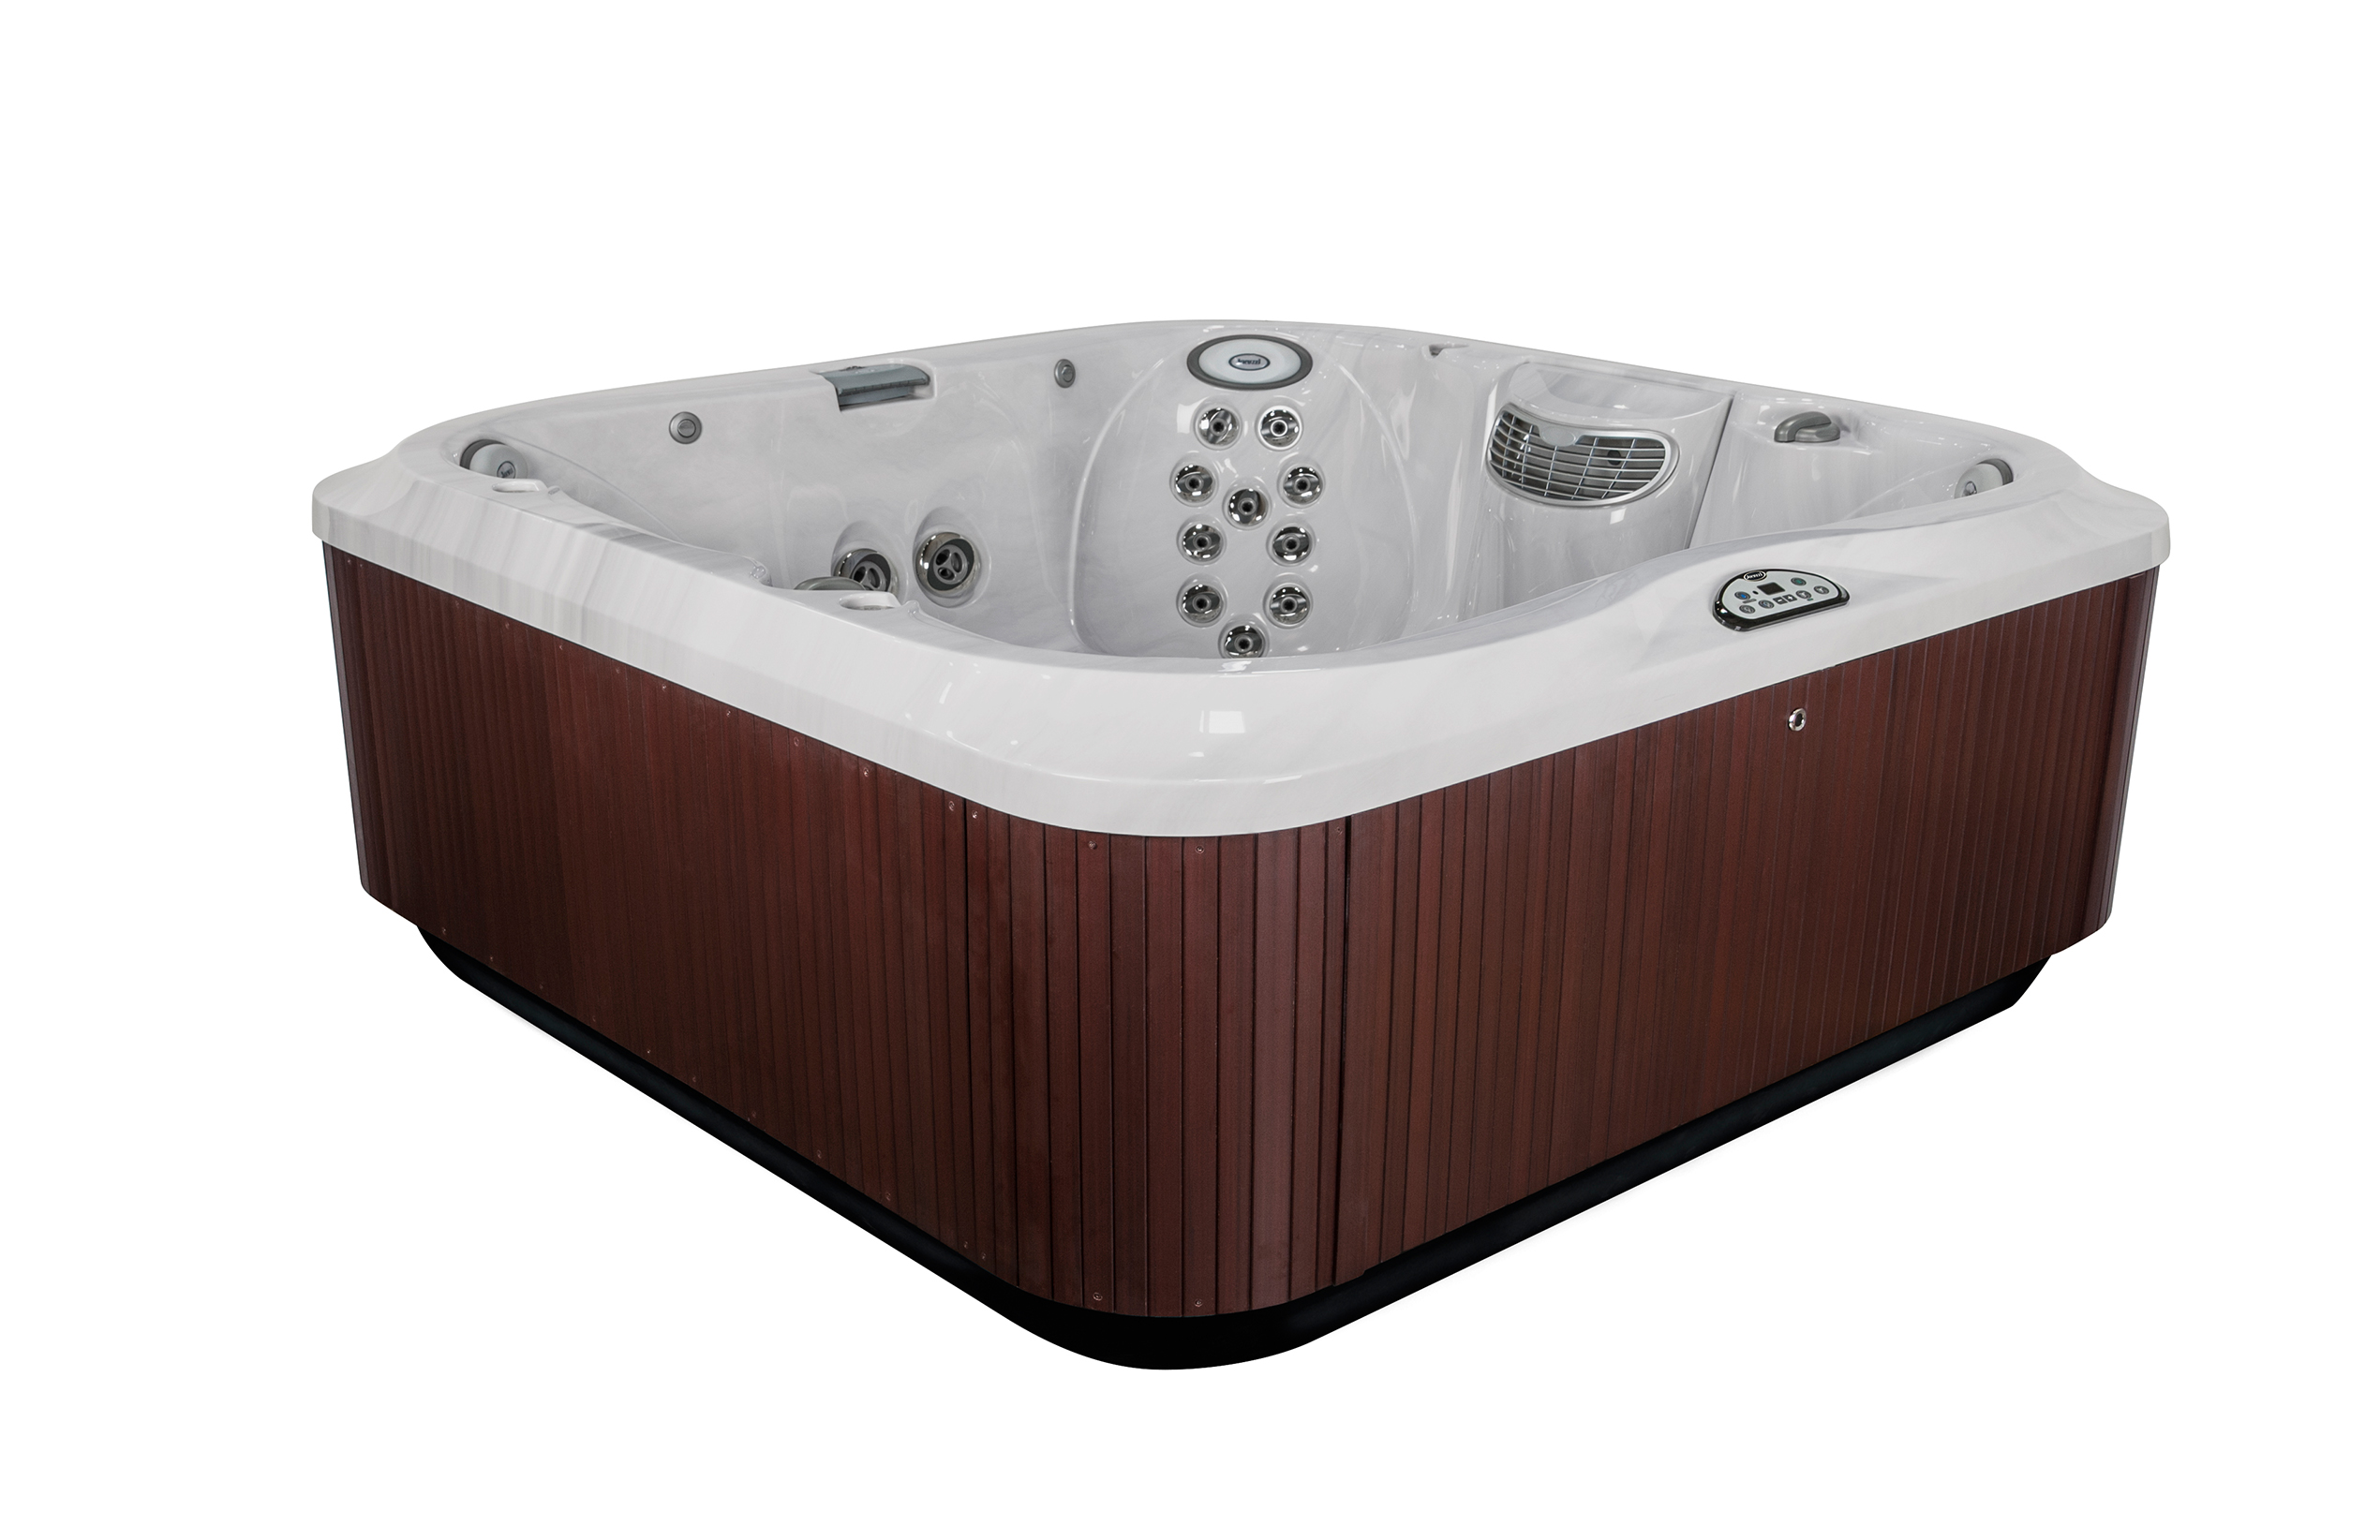 Jacuzzi Brand Pool Pump Jacuzzi J 385 7 Person Hot Tub Ultra Modern Pool And Patio